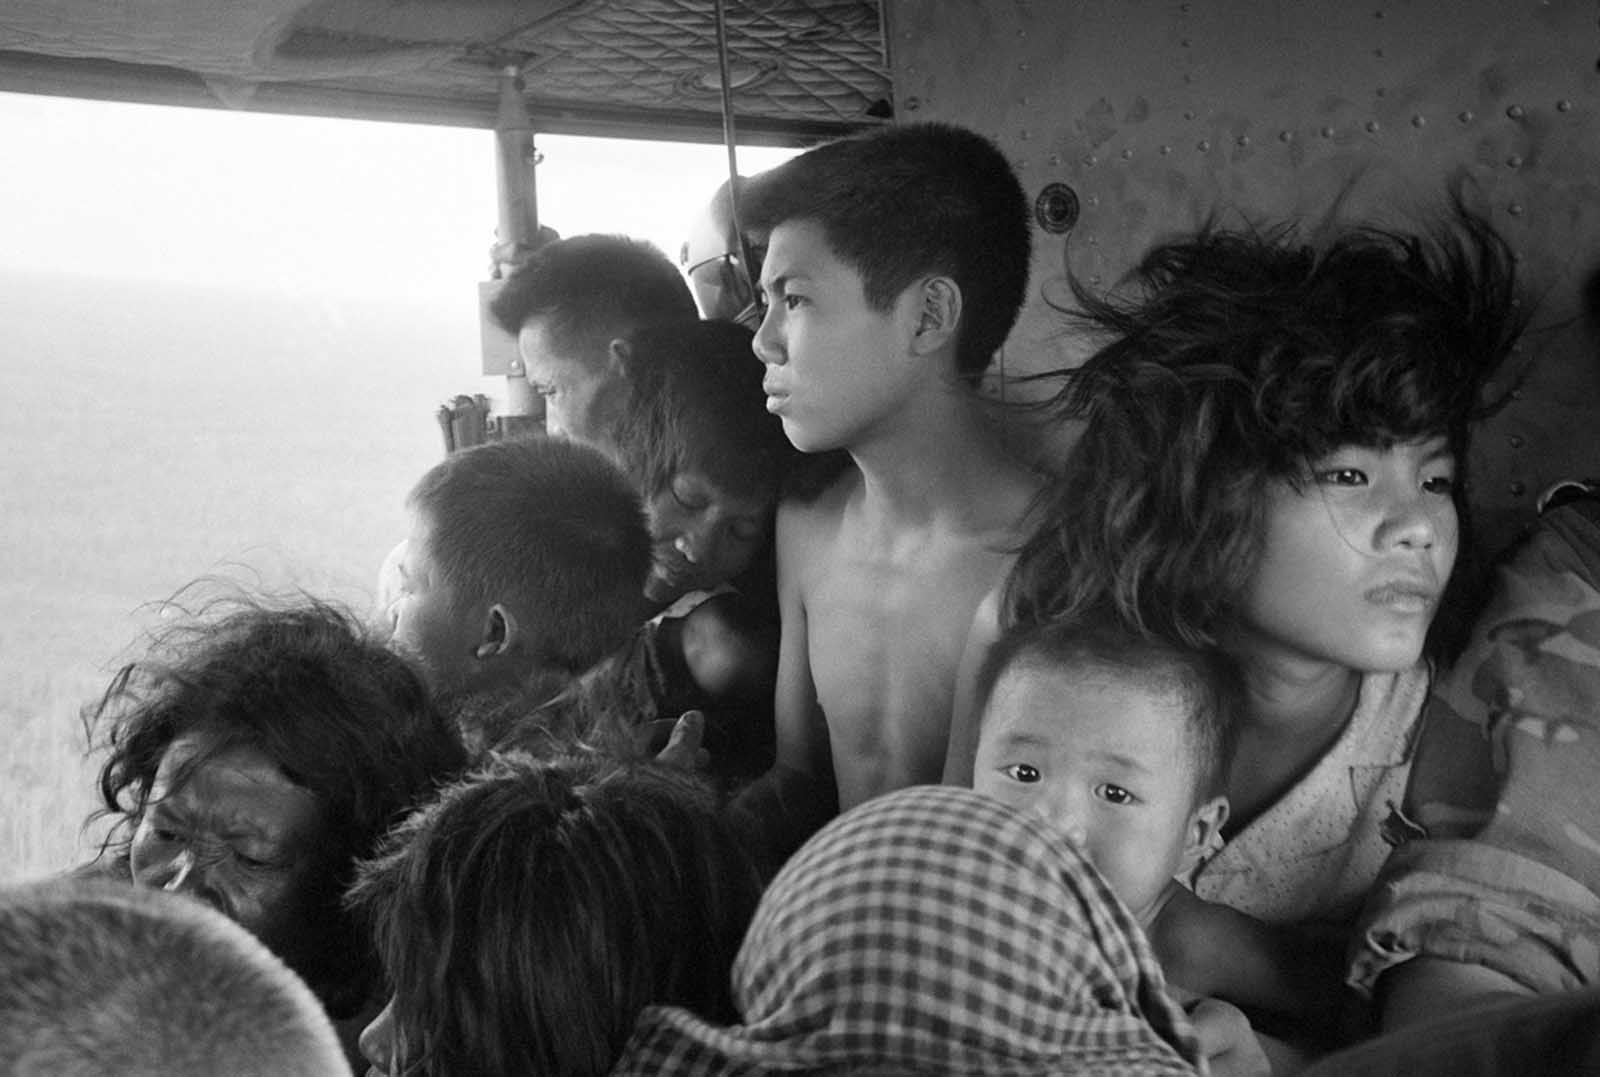 Vietnamese and Cambodian refugees crowd a U.S. helicopter which evacuated them from immediate combat zone of the U.S.-Vietnamese incursion into Cambodia on May 5, 1970. They were taken to a refugee reception center at the Katum Special Forces camp in South Vietnam, six miles from the Cambodian border.